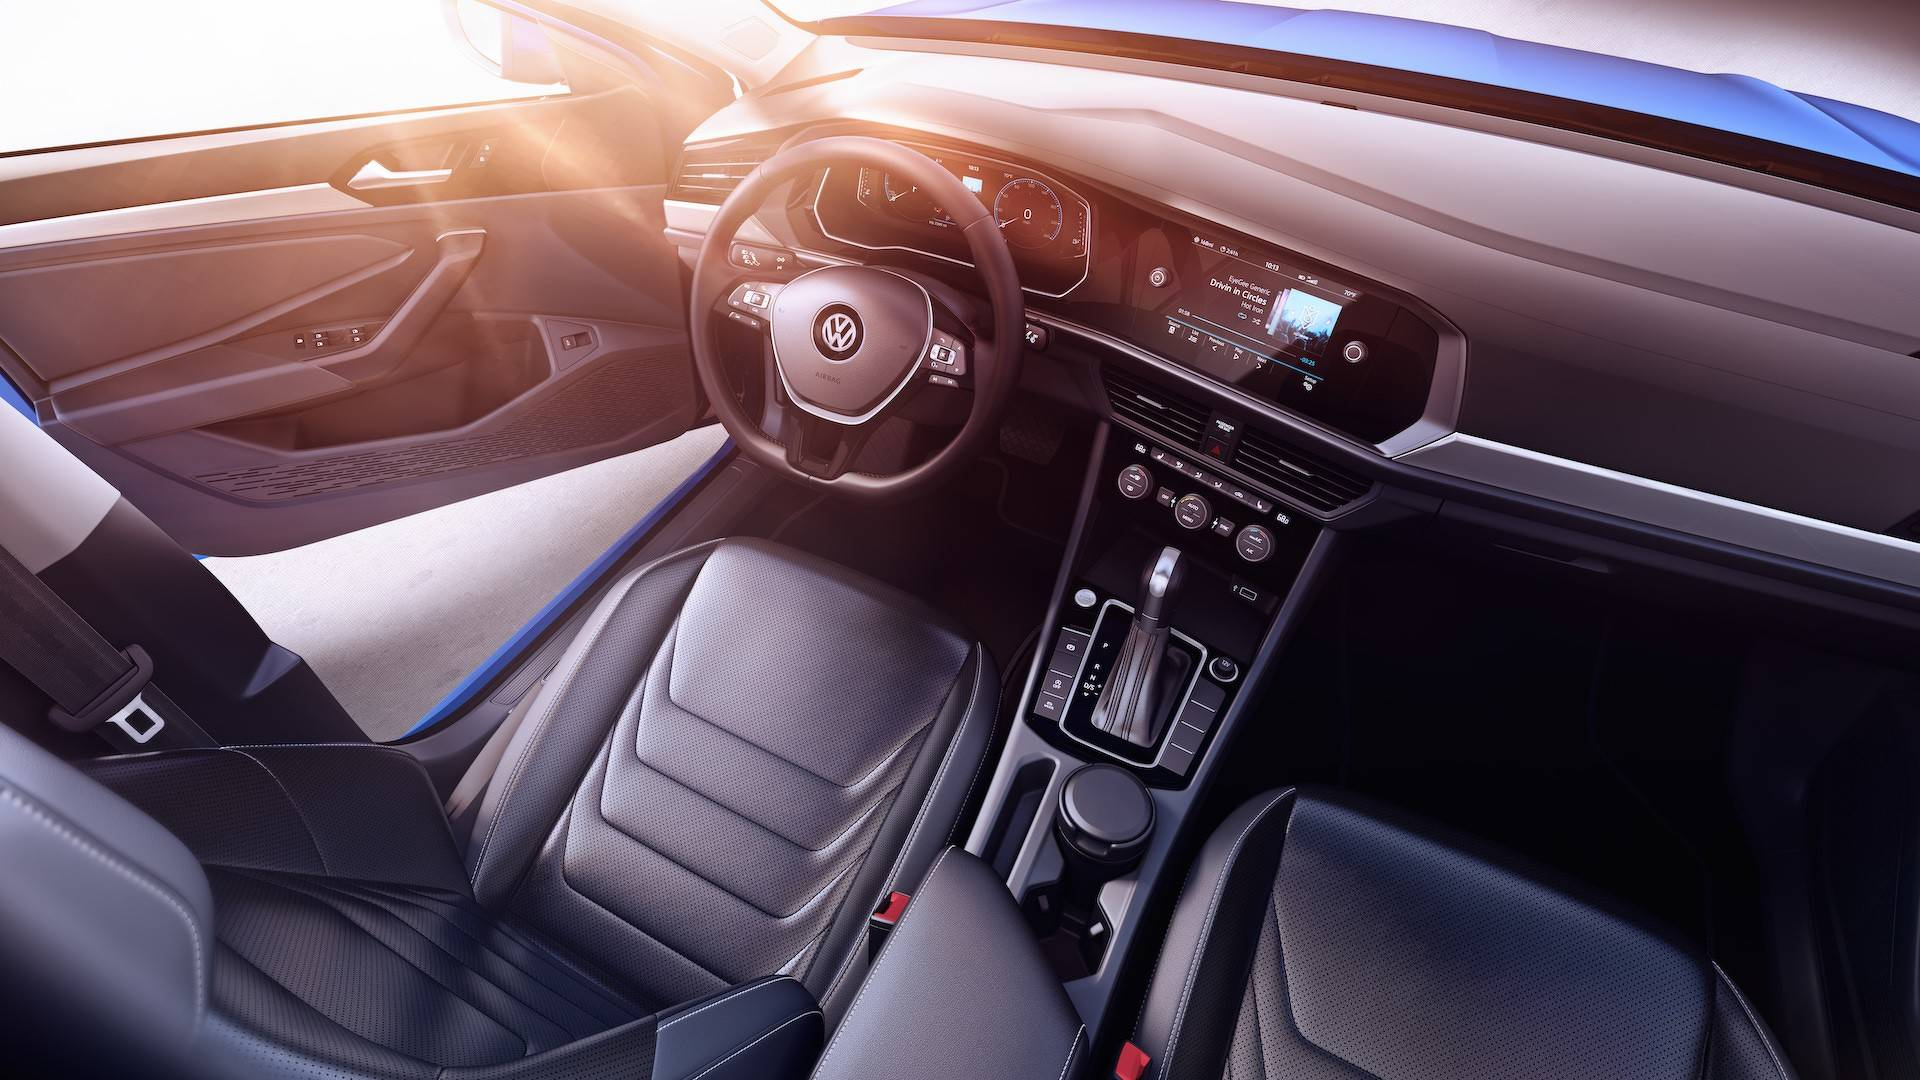 2019-7th-Generation-Volkswagen-Jetta-Interior_3